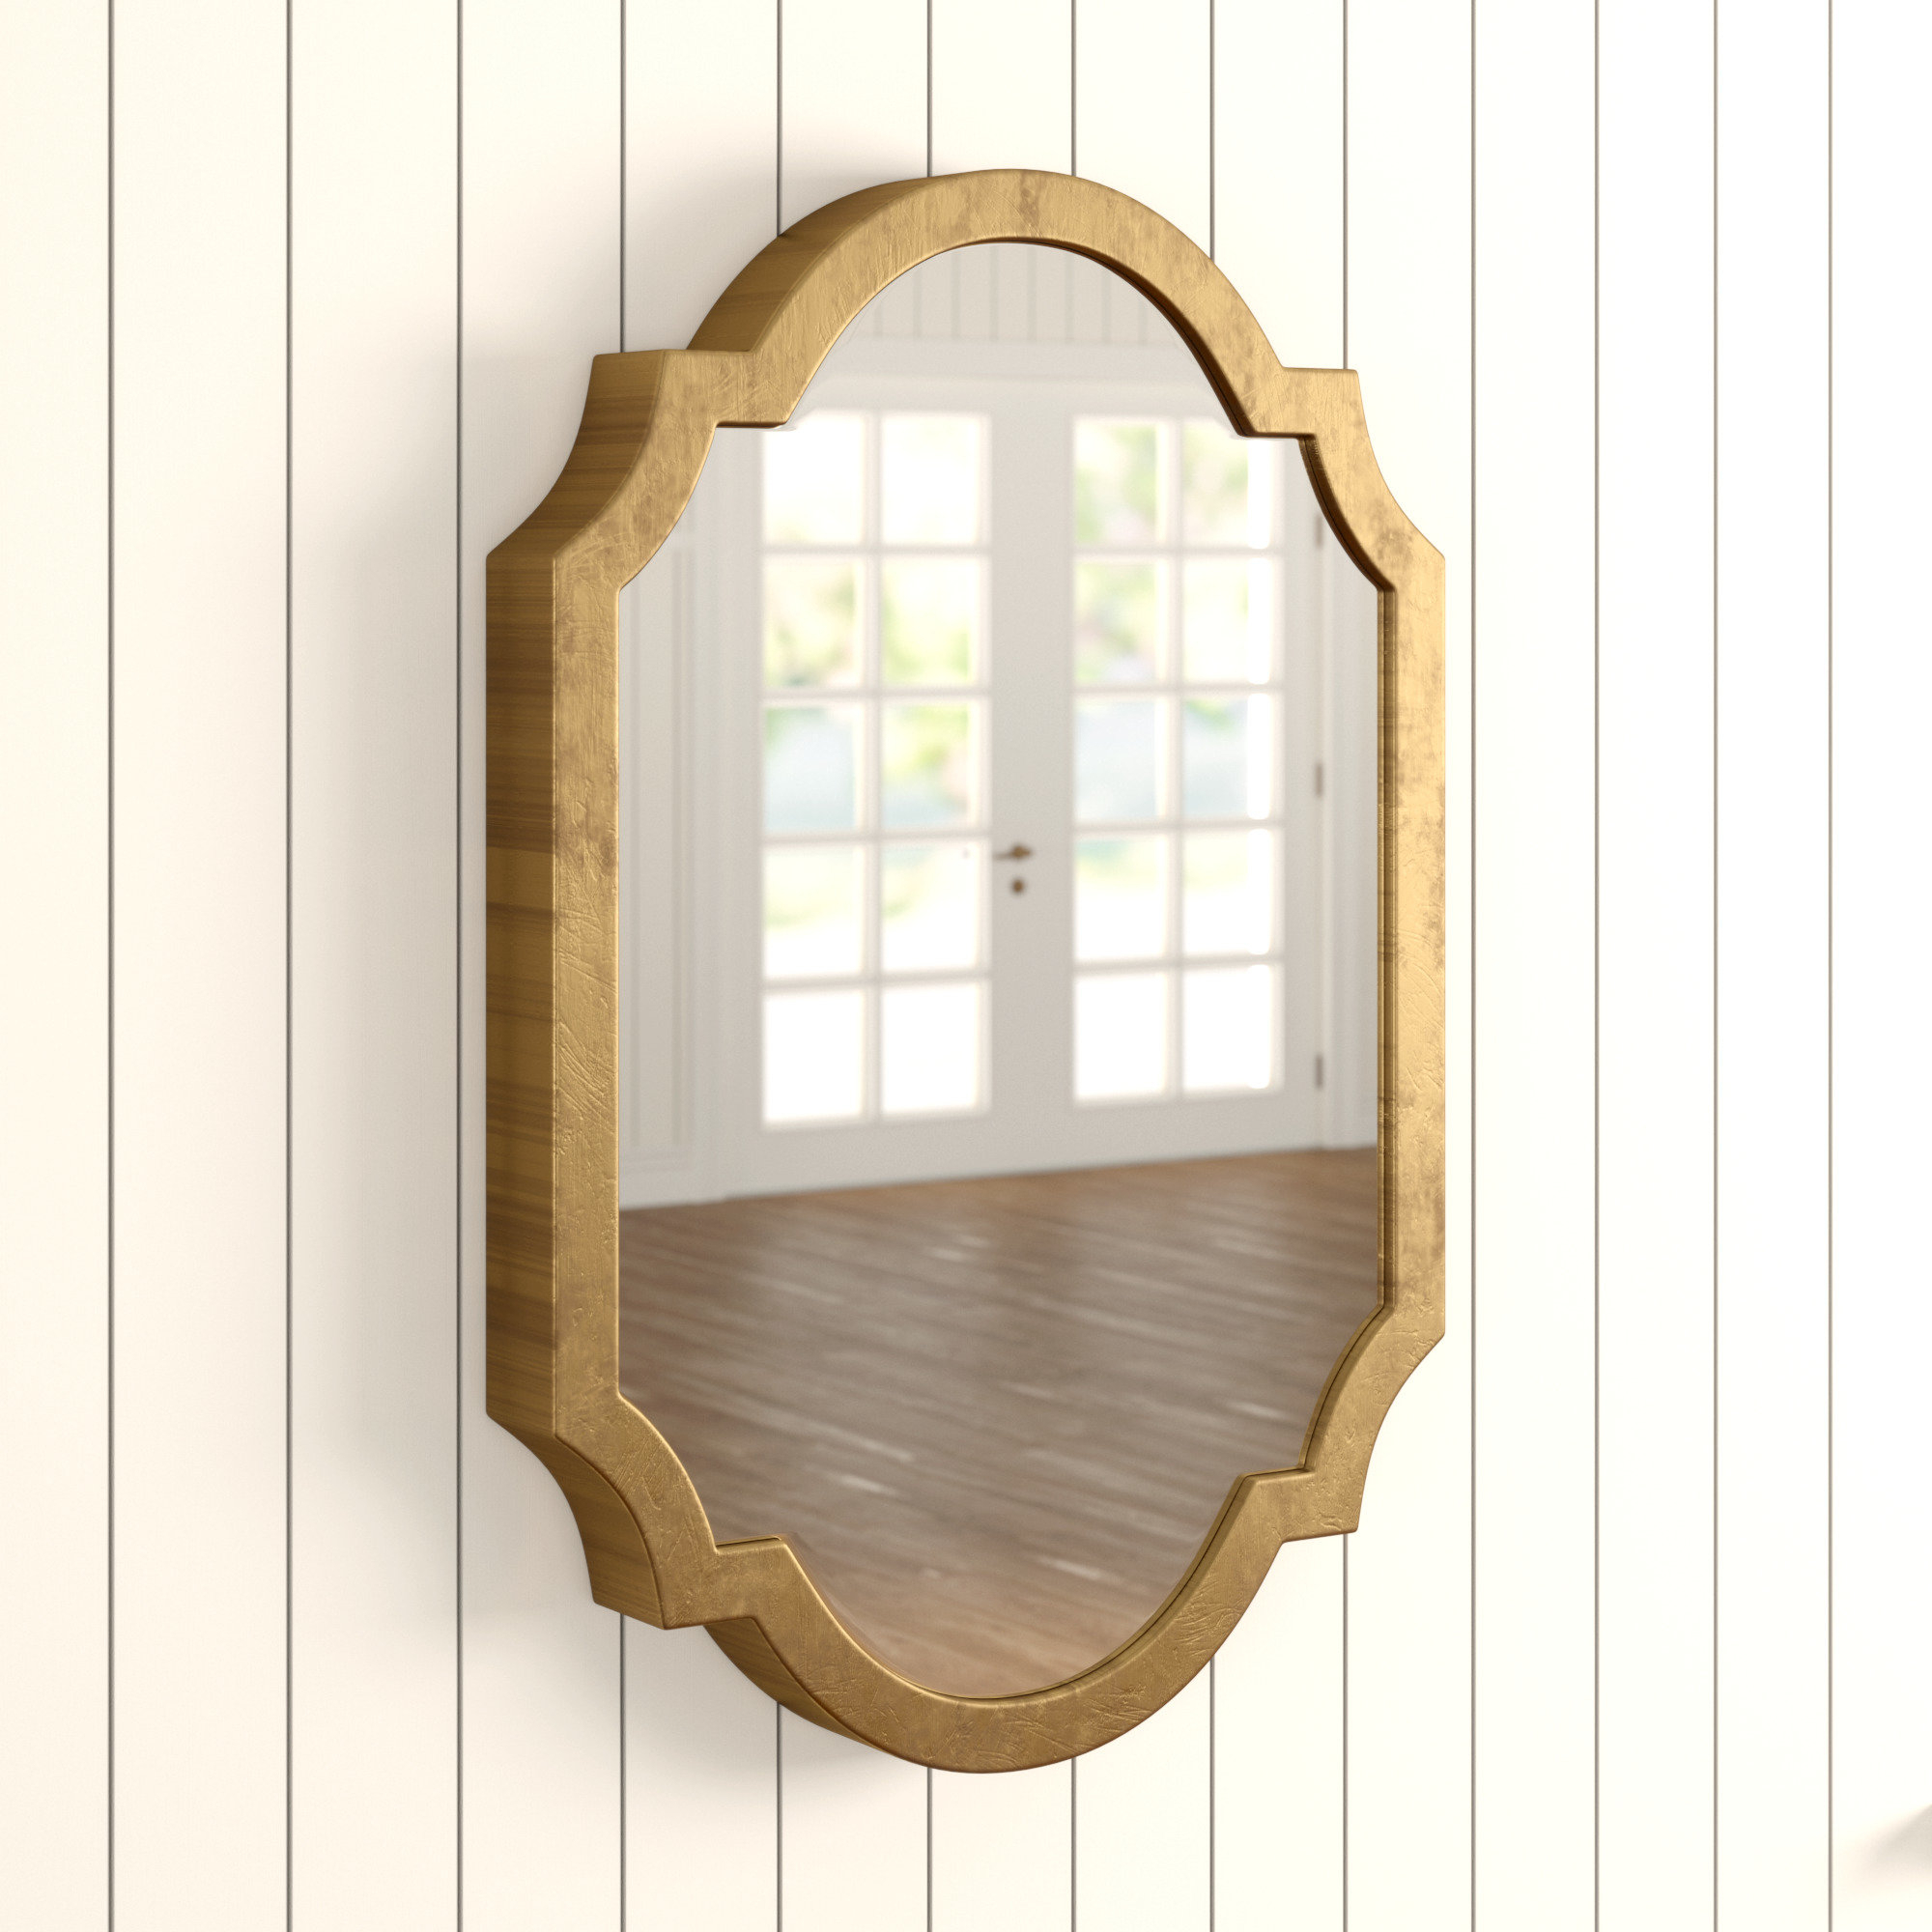 Moseley Accent Mirrors Intended For 2020 Astrid Modern & Contemporary Accent Mirror (View 4 of 20)